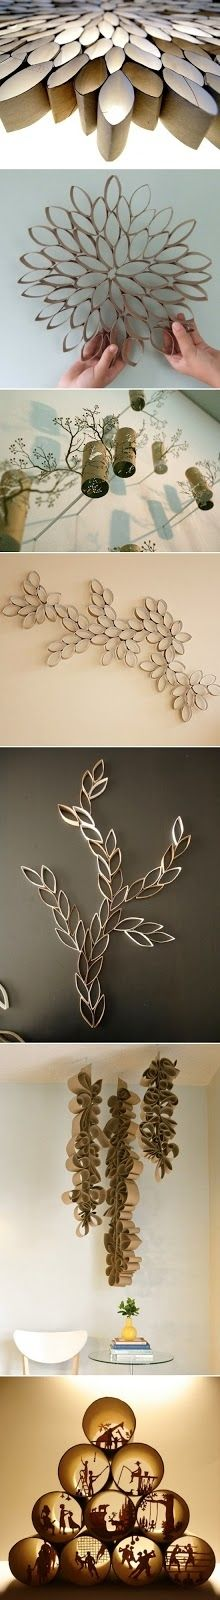 Toilet Paper Roll Art | 21 Toilet Paper Roll Craft Ideas